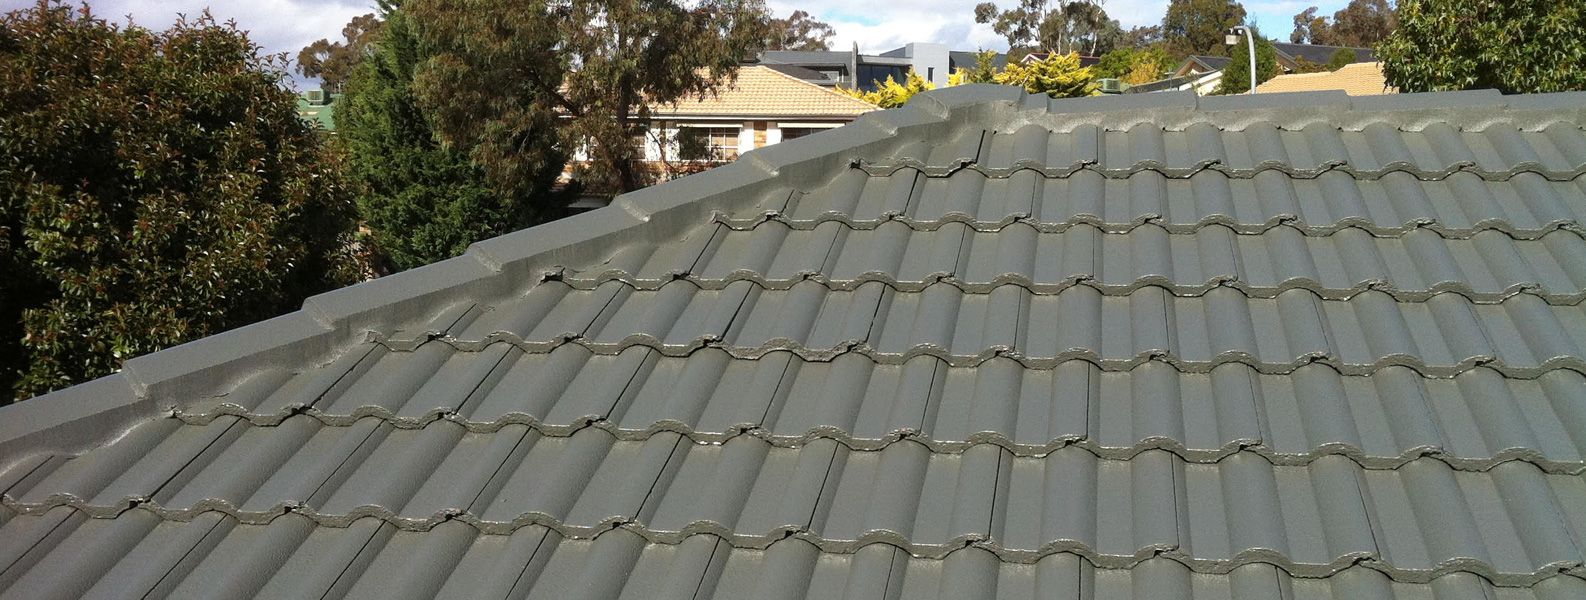 MC Roofing & Guttering | Gutter Installation & Roof Repairs Canberra